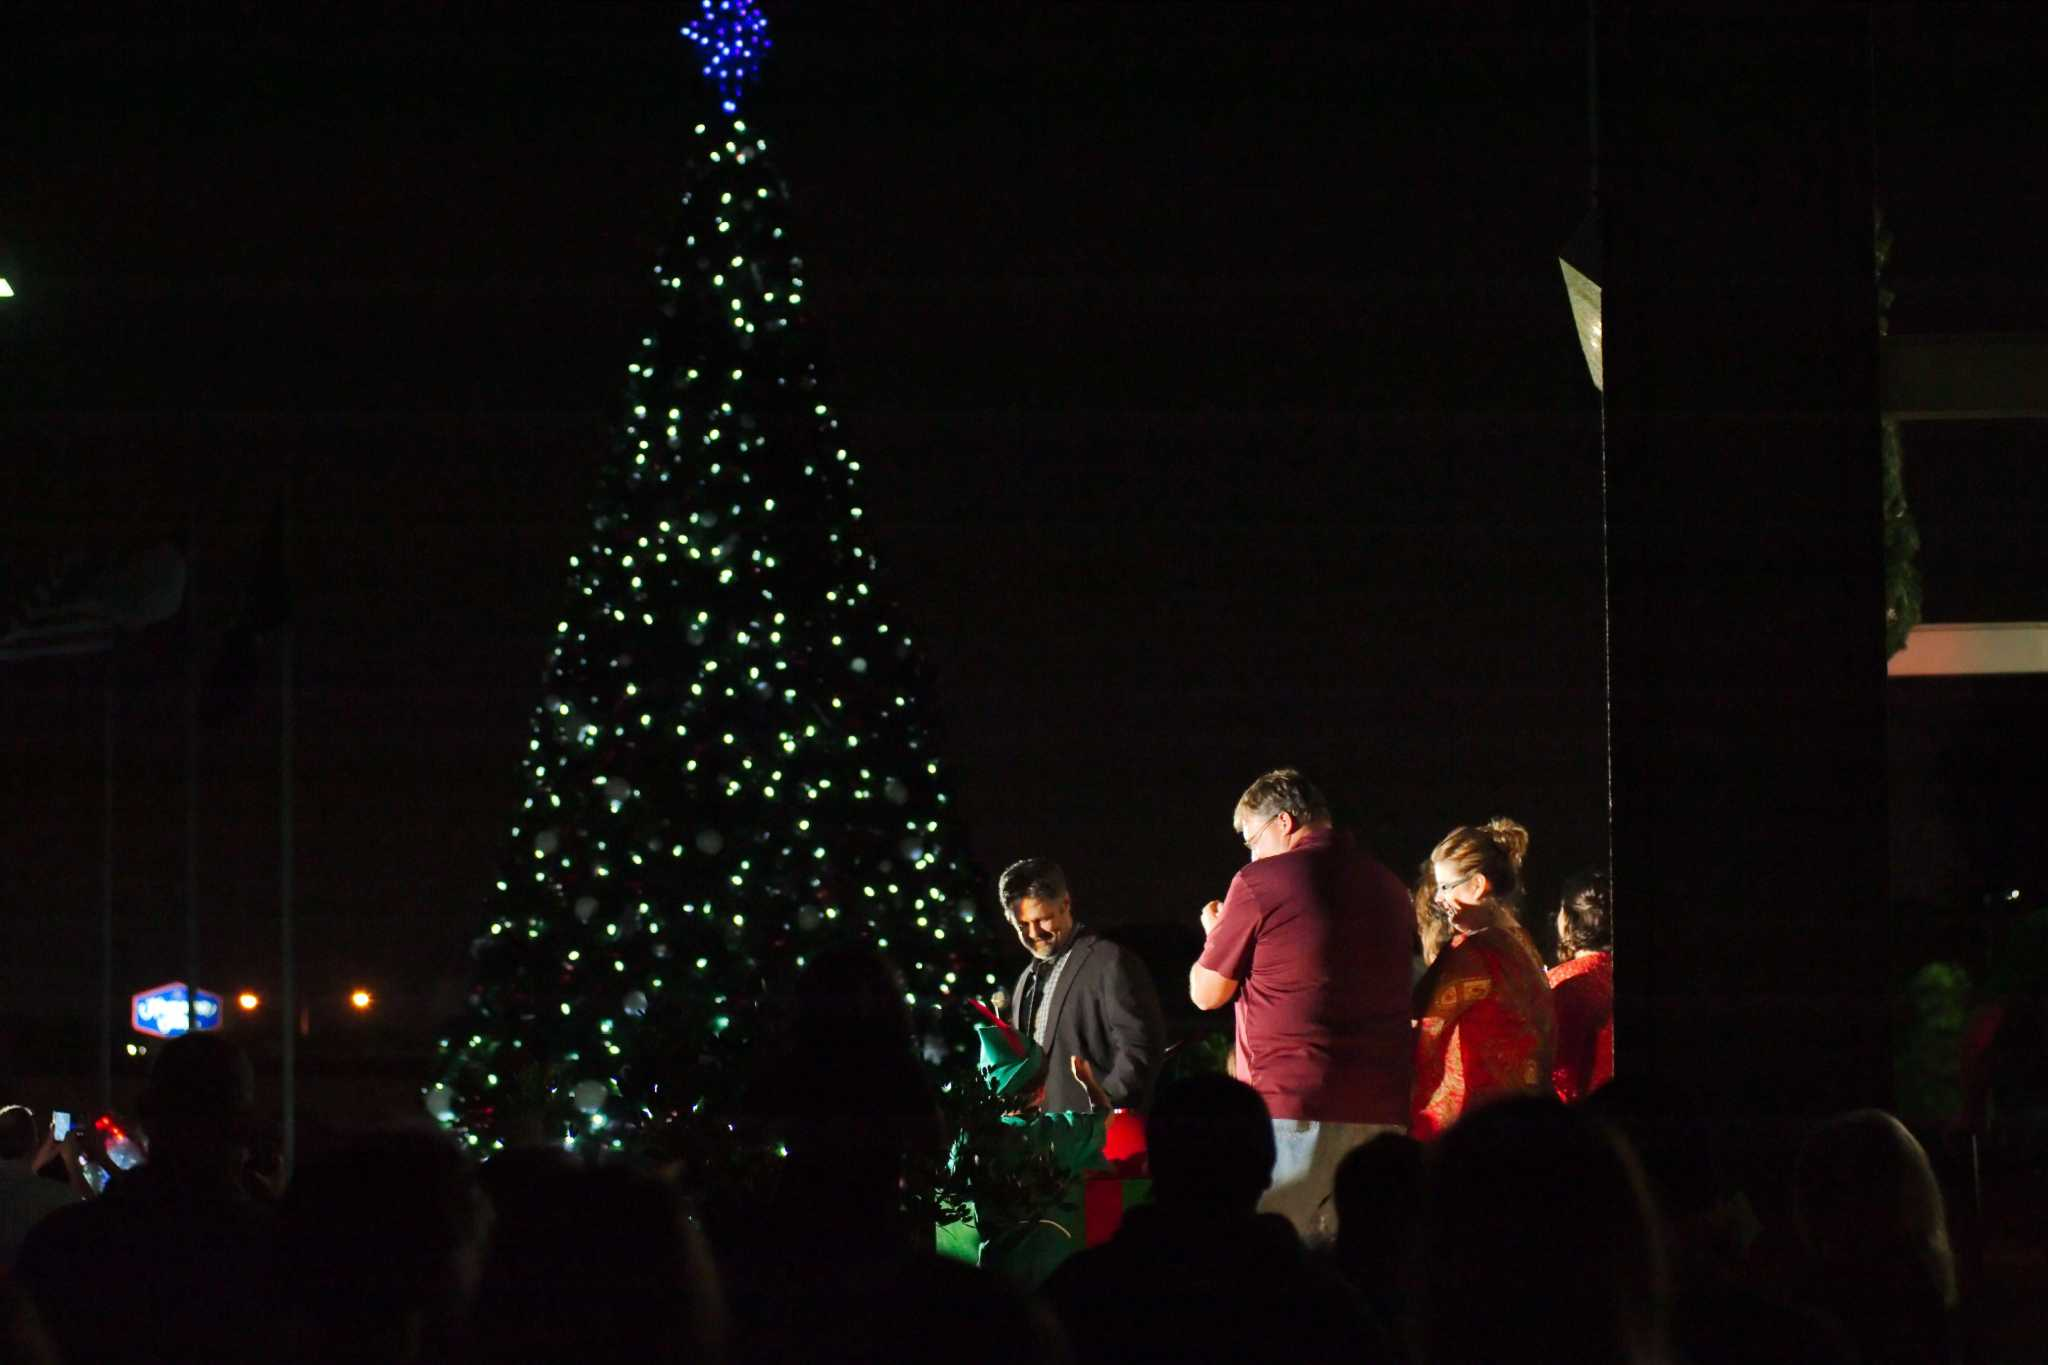 Here come holiday events in Deer Park